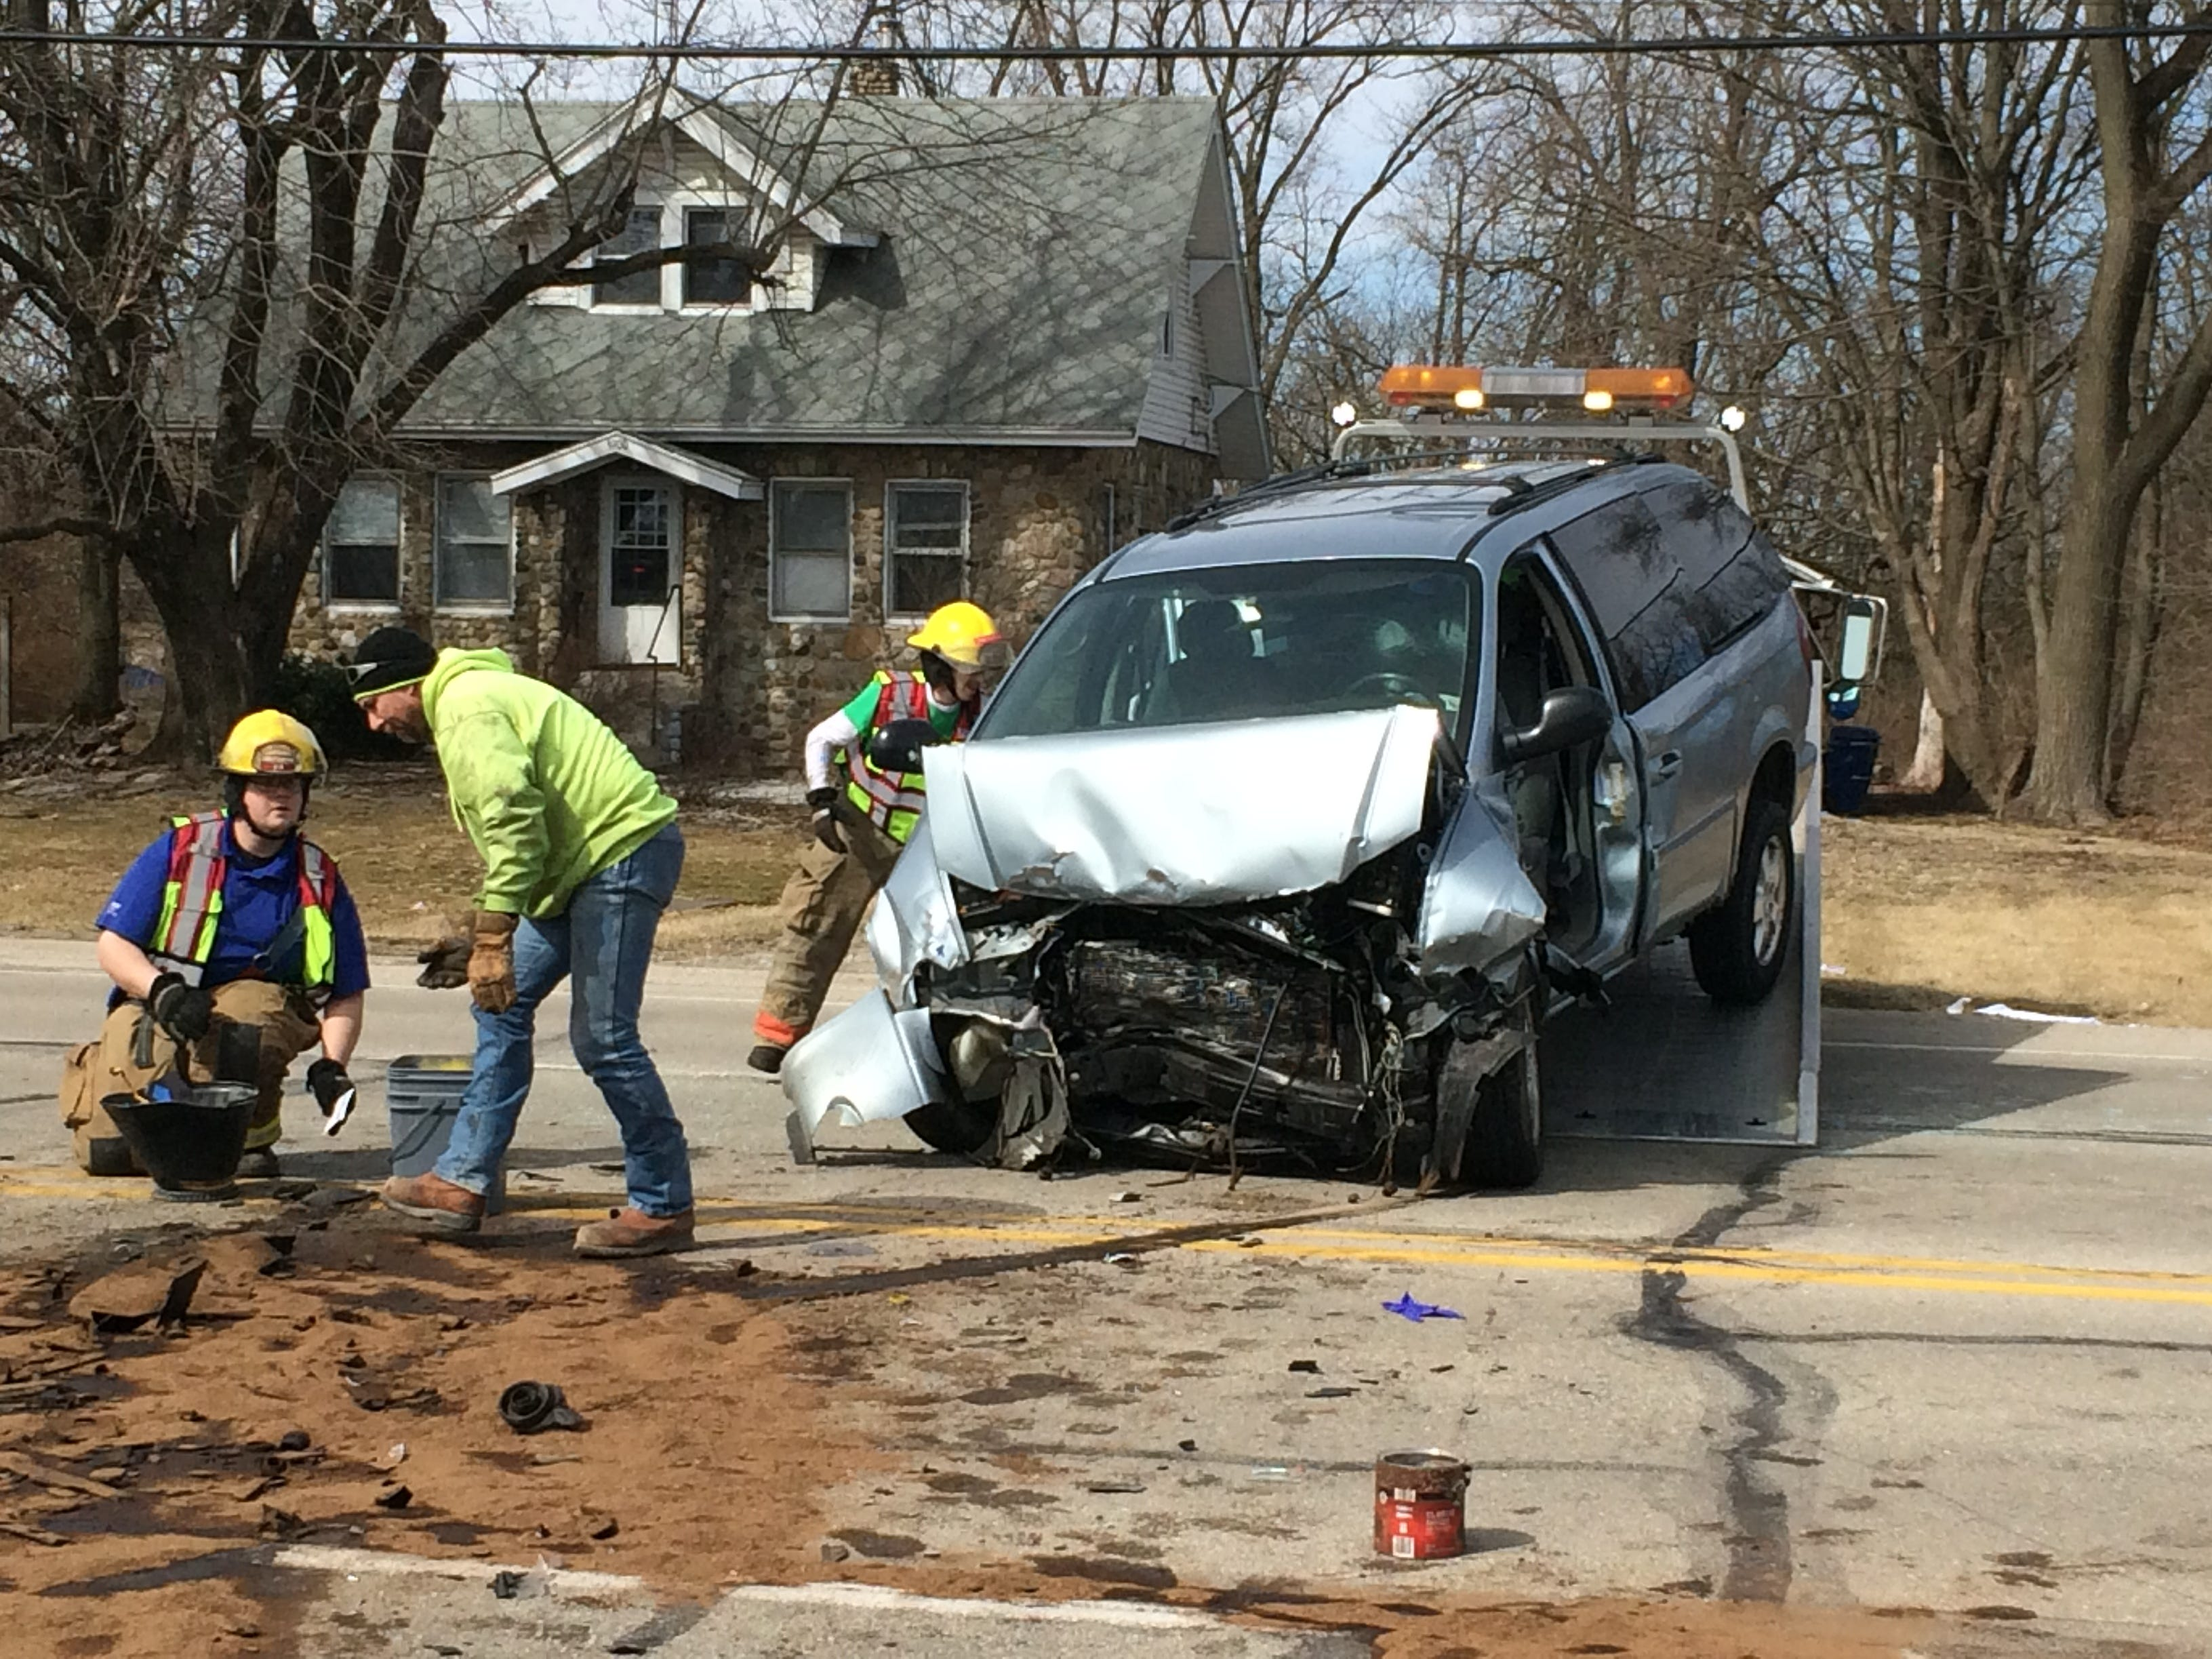 A Pardo's Towing & Recovery crew loads a Dodge Grand Caravan onto a wrecker after a Tuesday afternoon accident in the 3900 block of National Road West.